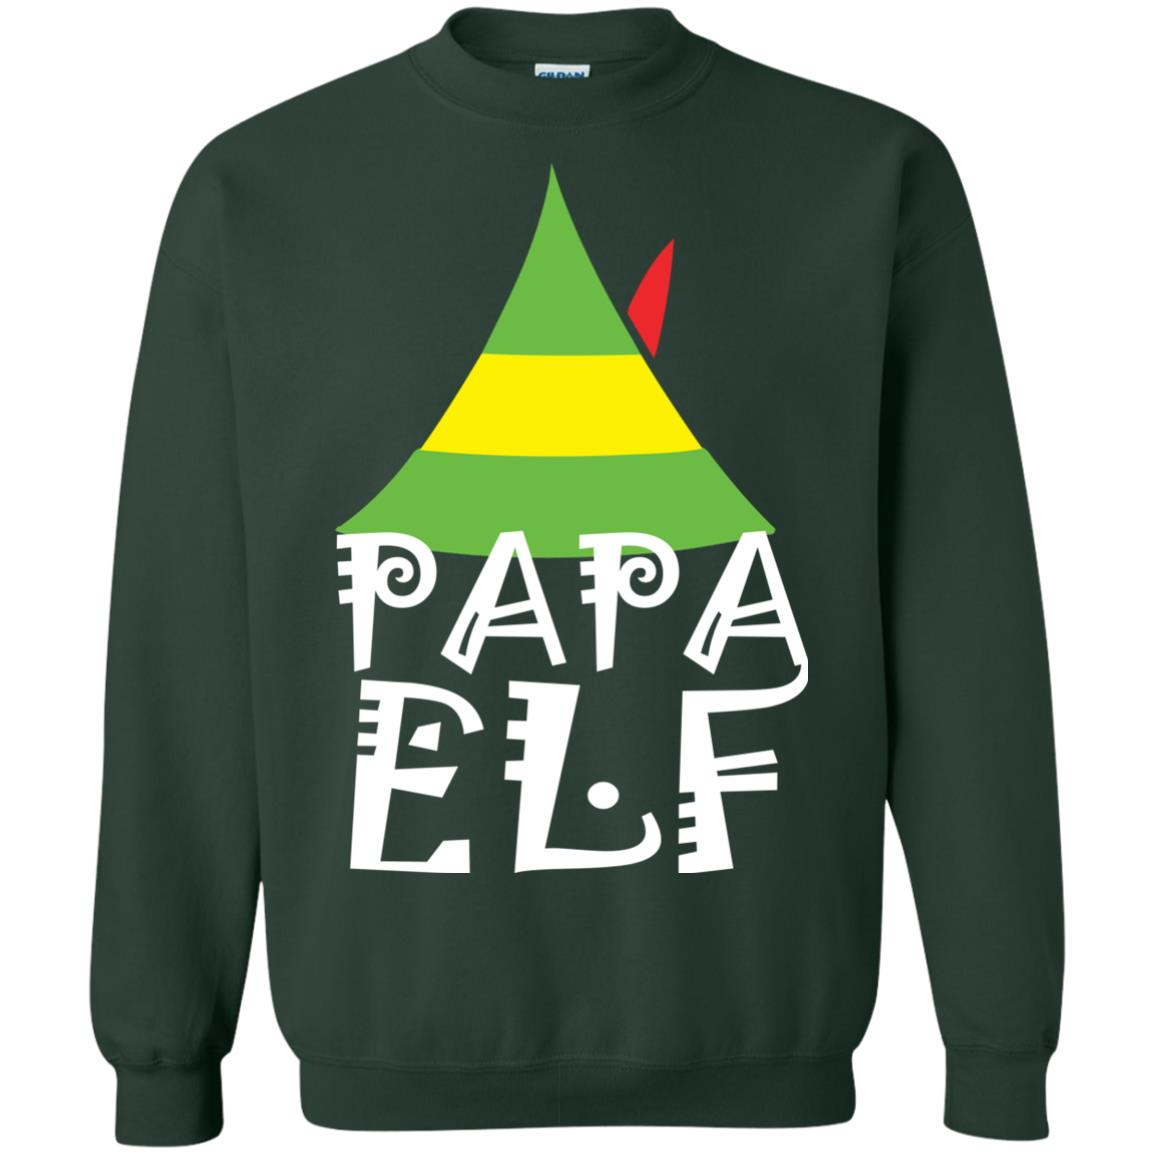 buddy the elf papa elf christmas sweater shirt - Buddy The Elf Christmas Sweater